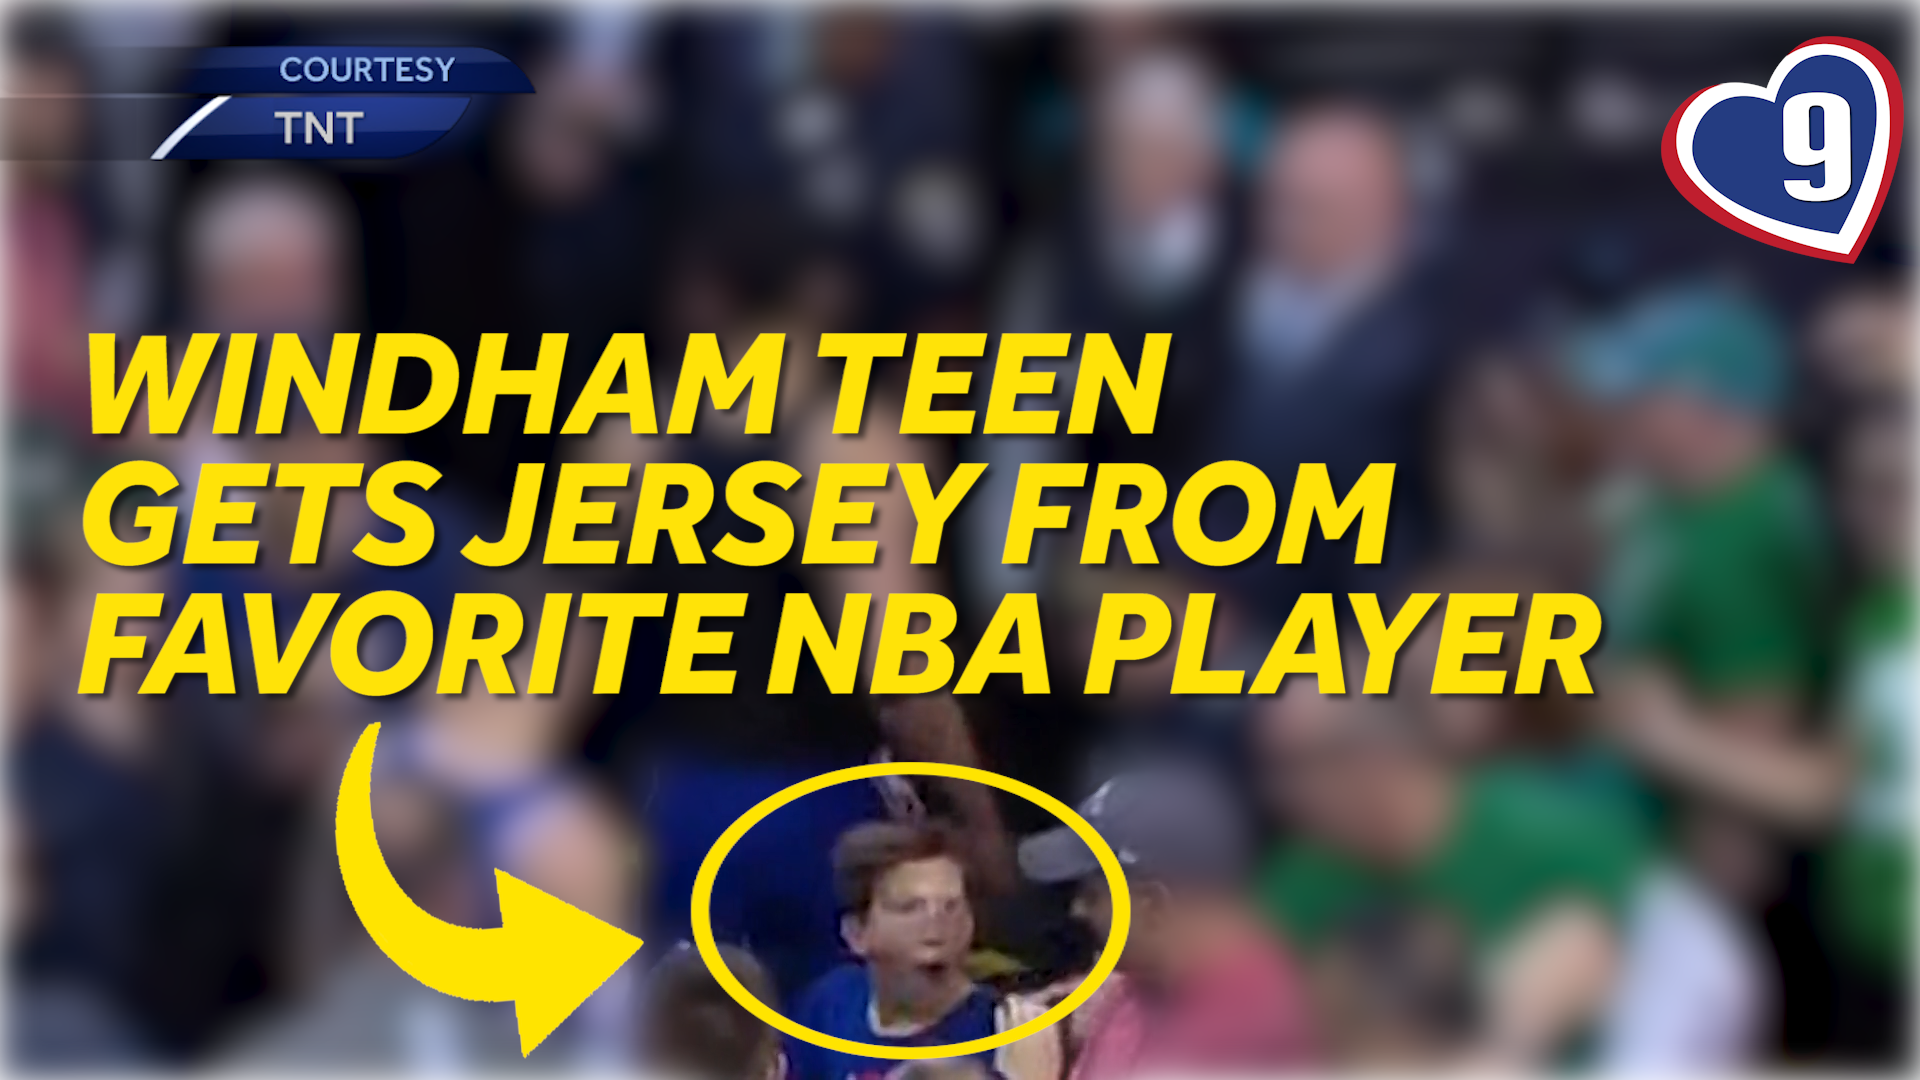 9 Loves: Windham teen receives jersey from favorite basketball player